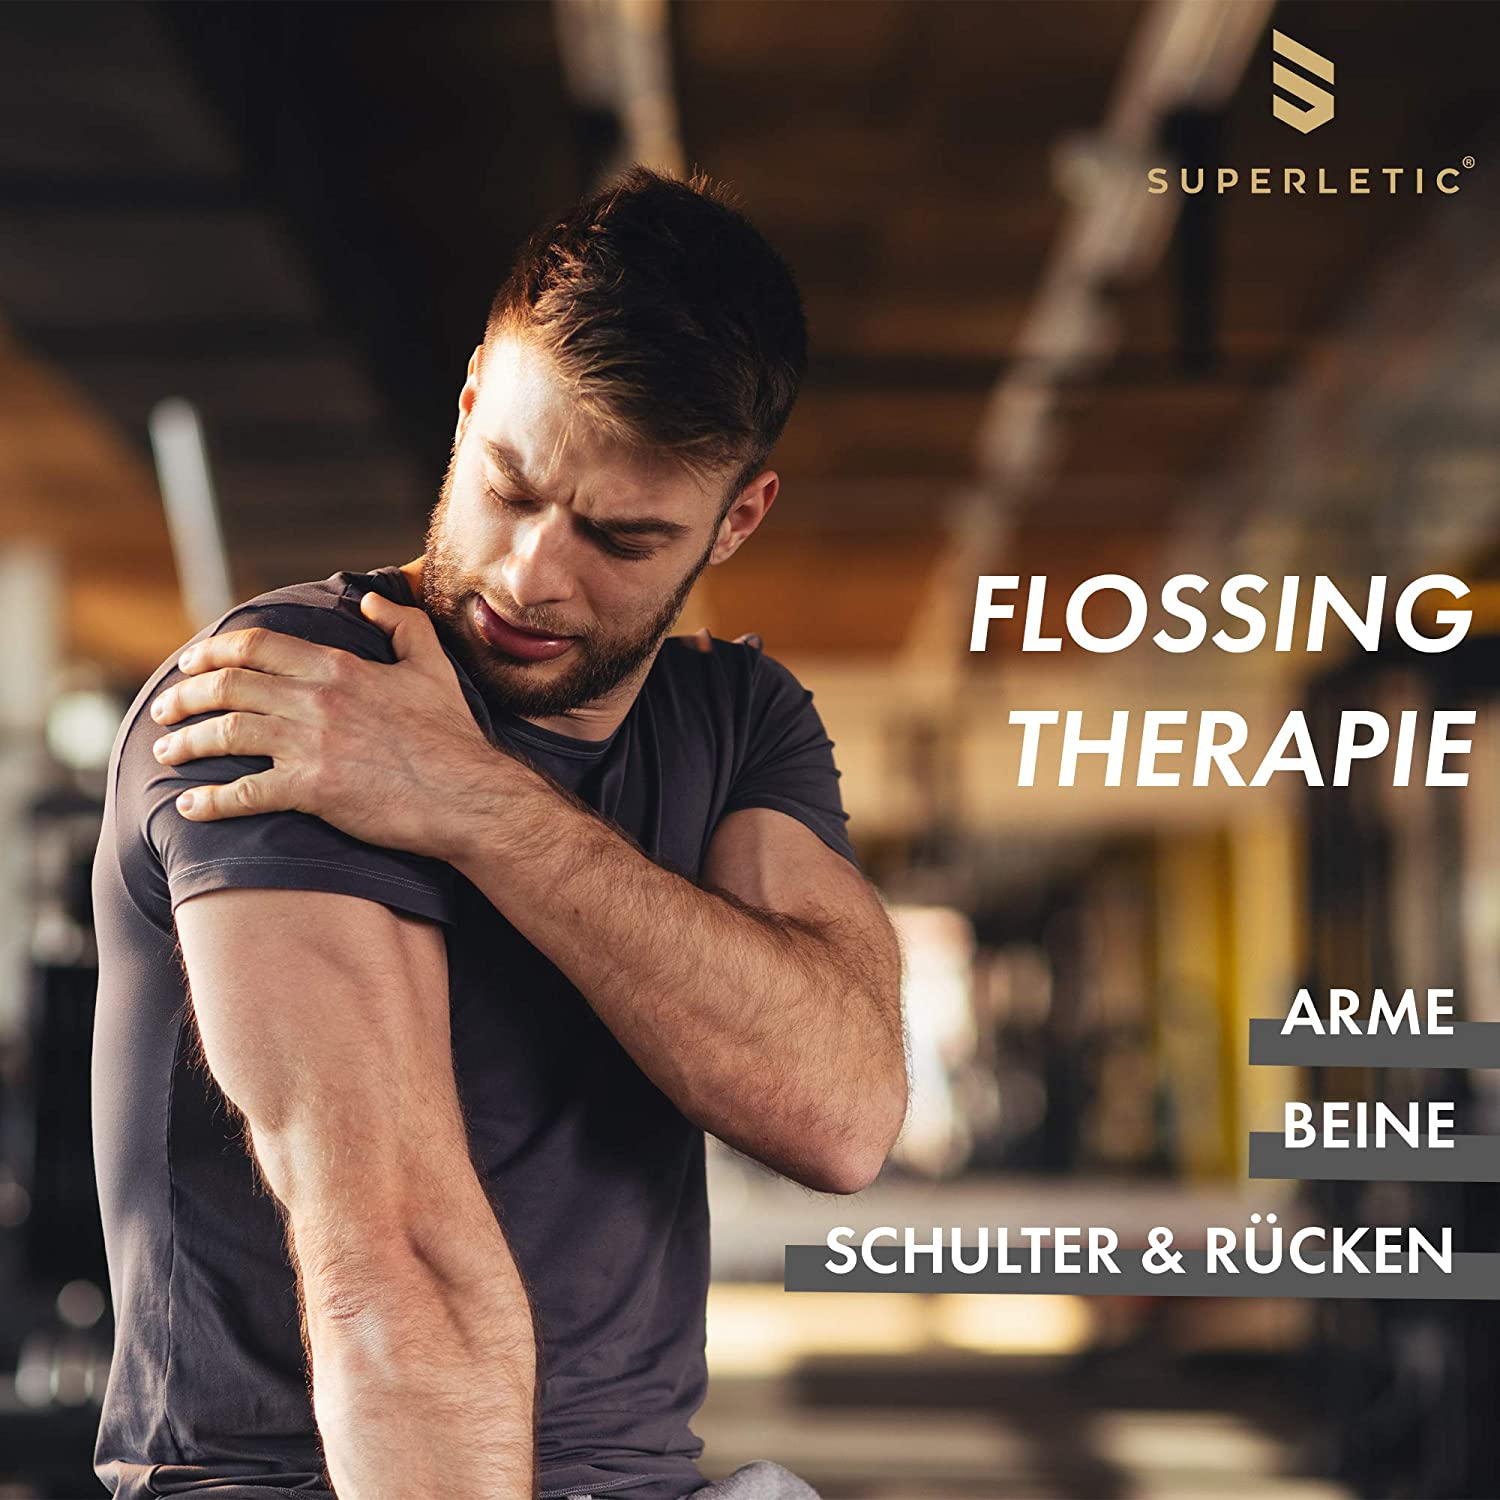 Training und Medical Flossing 100/% Latex SUPERLETIC Floss-Band Essential 2 m x 5 cm Flossing-Band f/ür Physiotherapie schwarz